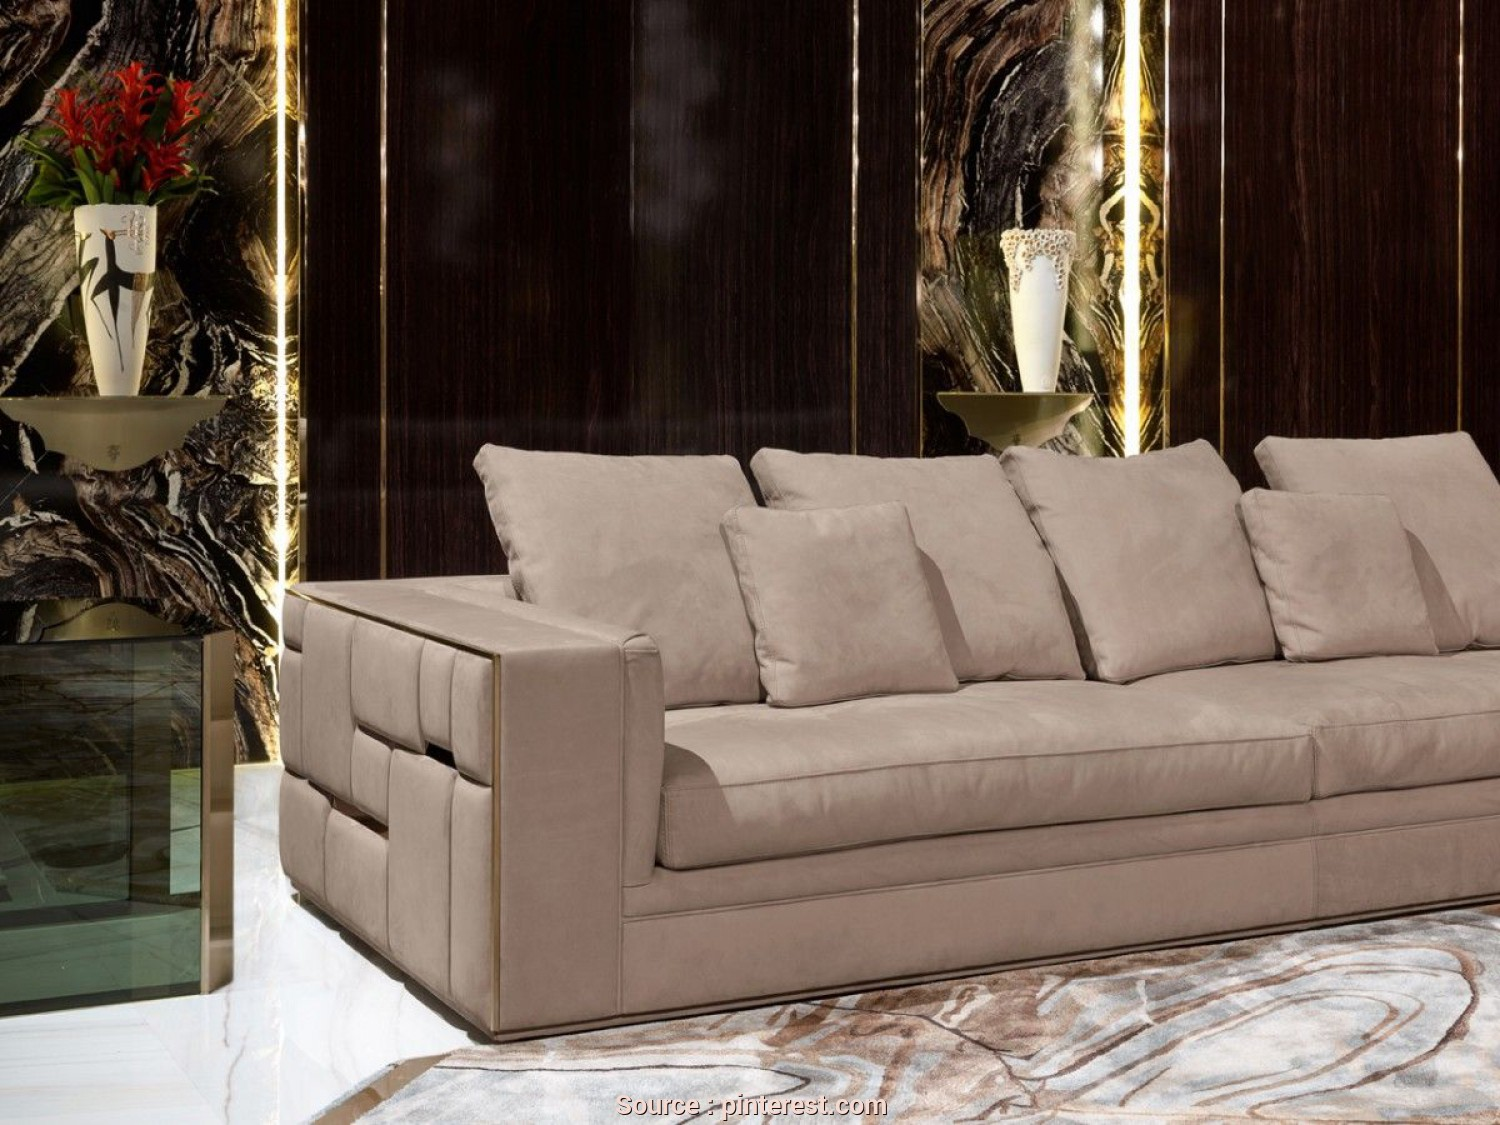 Divano Sofa Inegöl, Bello Babylon, Livingroom, Visionnaire Home Philosophy Sofa Furniture, Luxury Furniture, Living Room Furniture